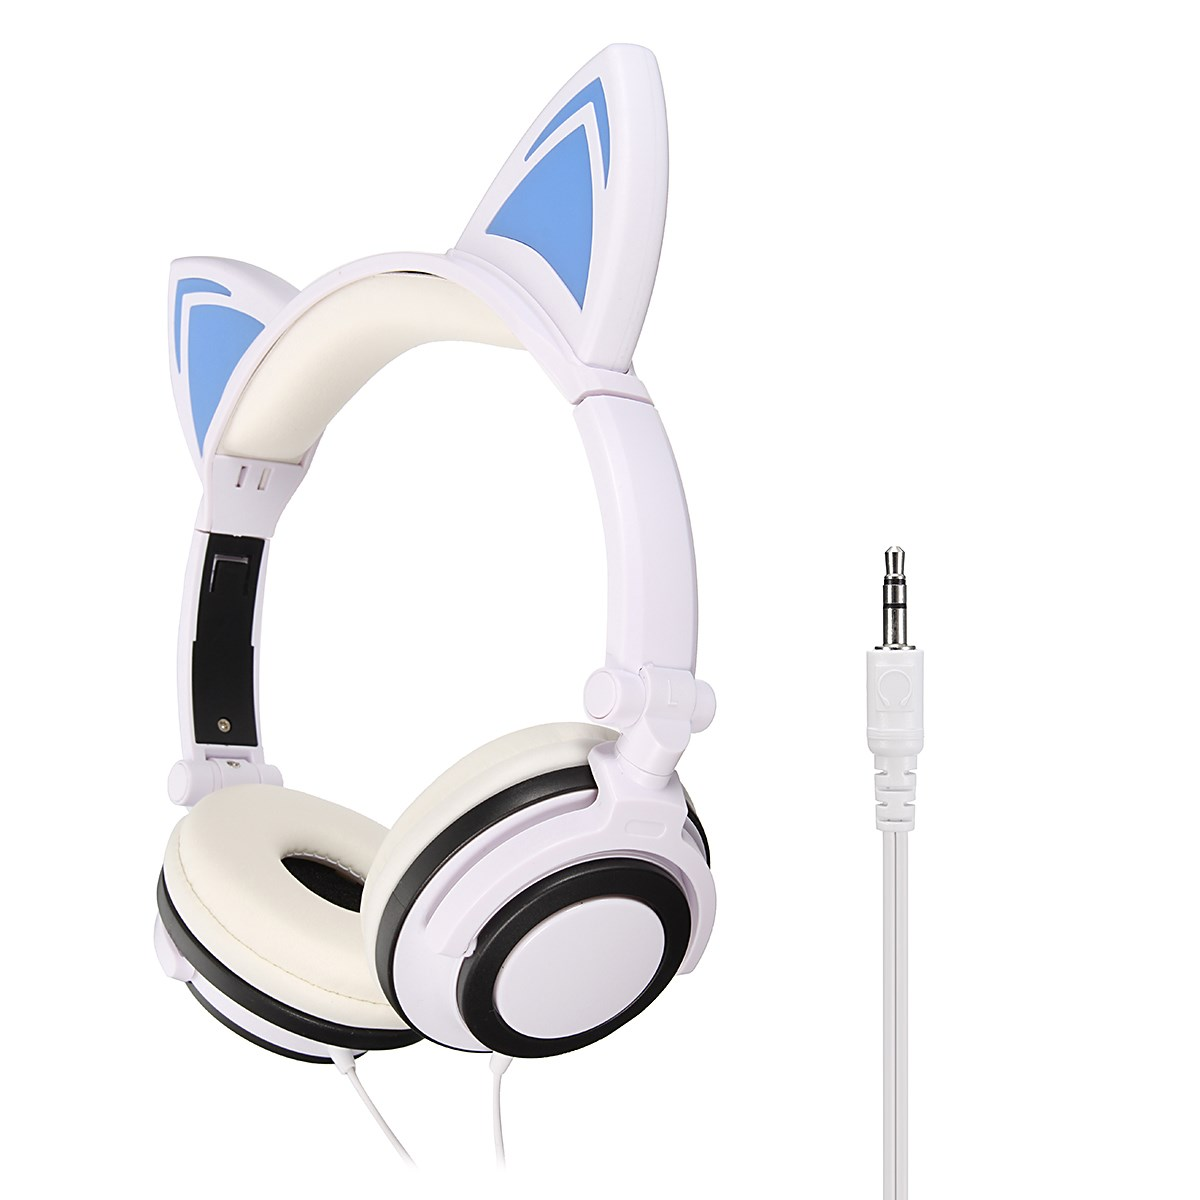 LEORY Foldable Flashing Glowing Cat Ear headphones Gaming Headset Earphone with LED Light For PC Laptop Computer Mobile Phone high quality sound effect gaming headset with led light over ear glowing stereo headphones with mic for computer pc laptop gamer